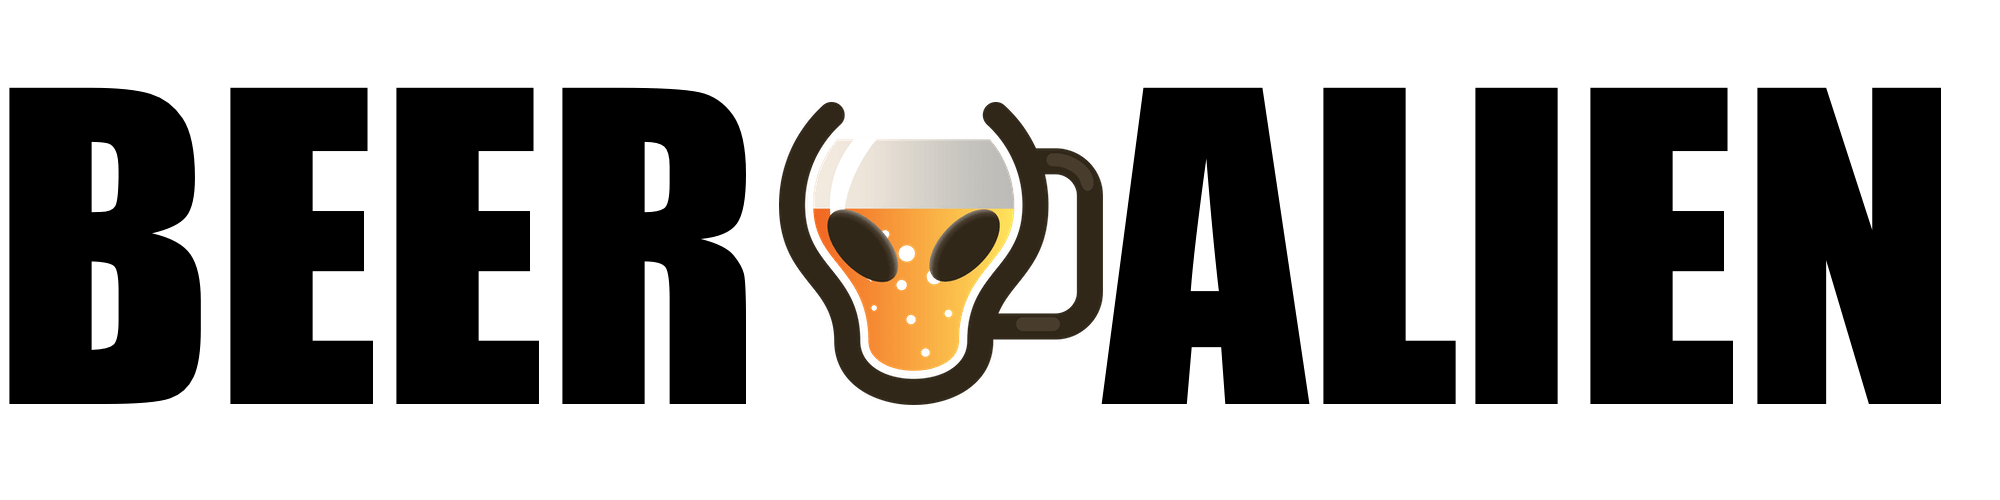 Beer Alien logo